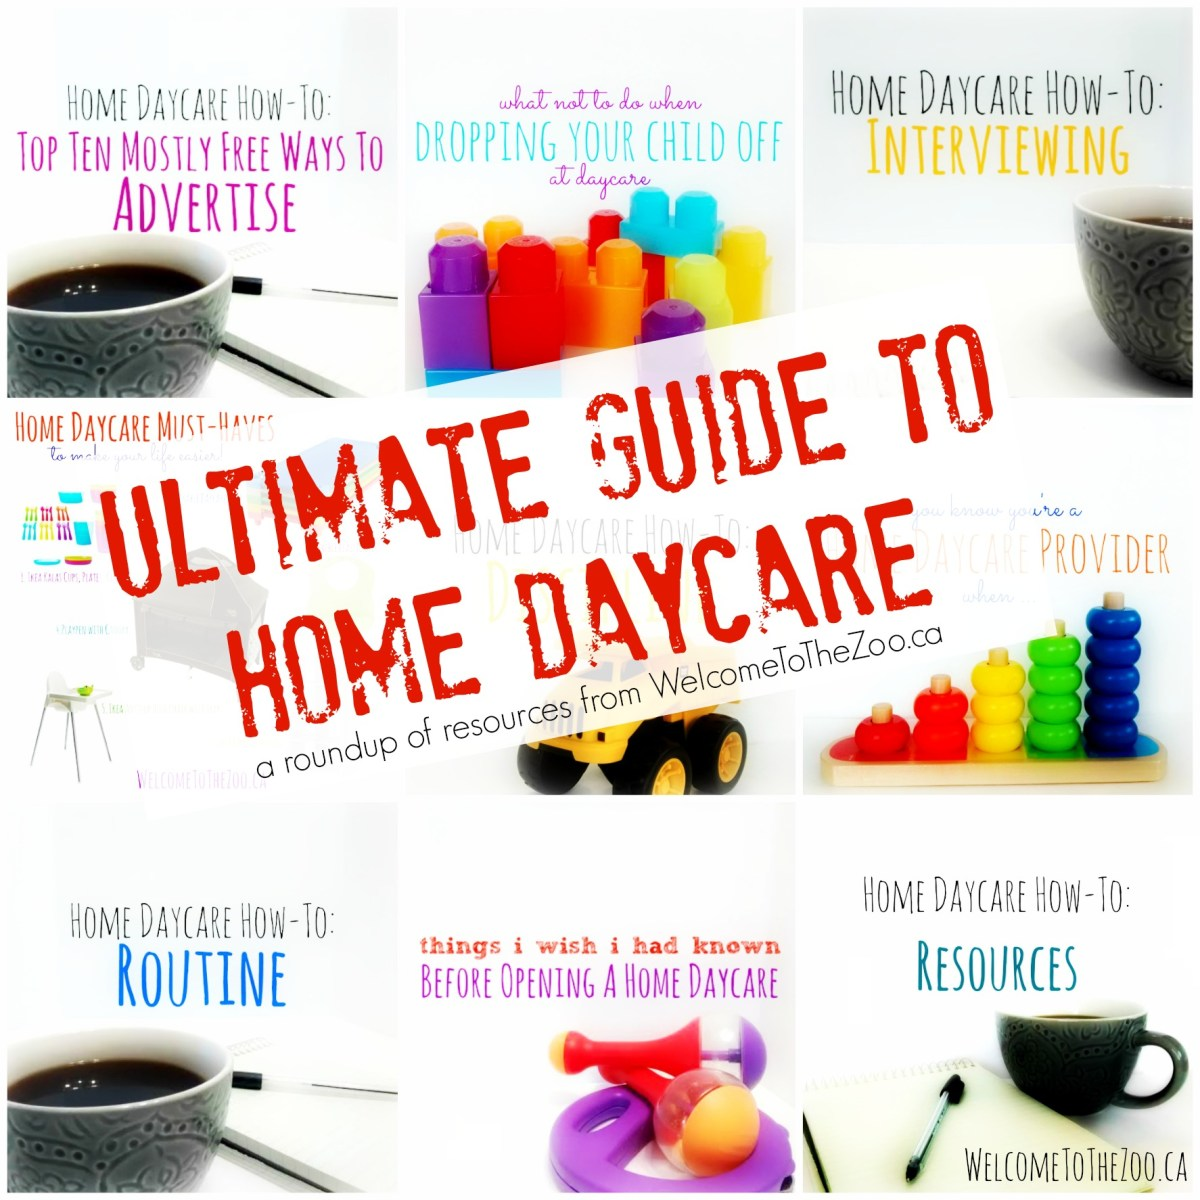 The Ultimate Guide To Home Daycare